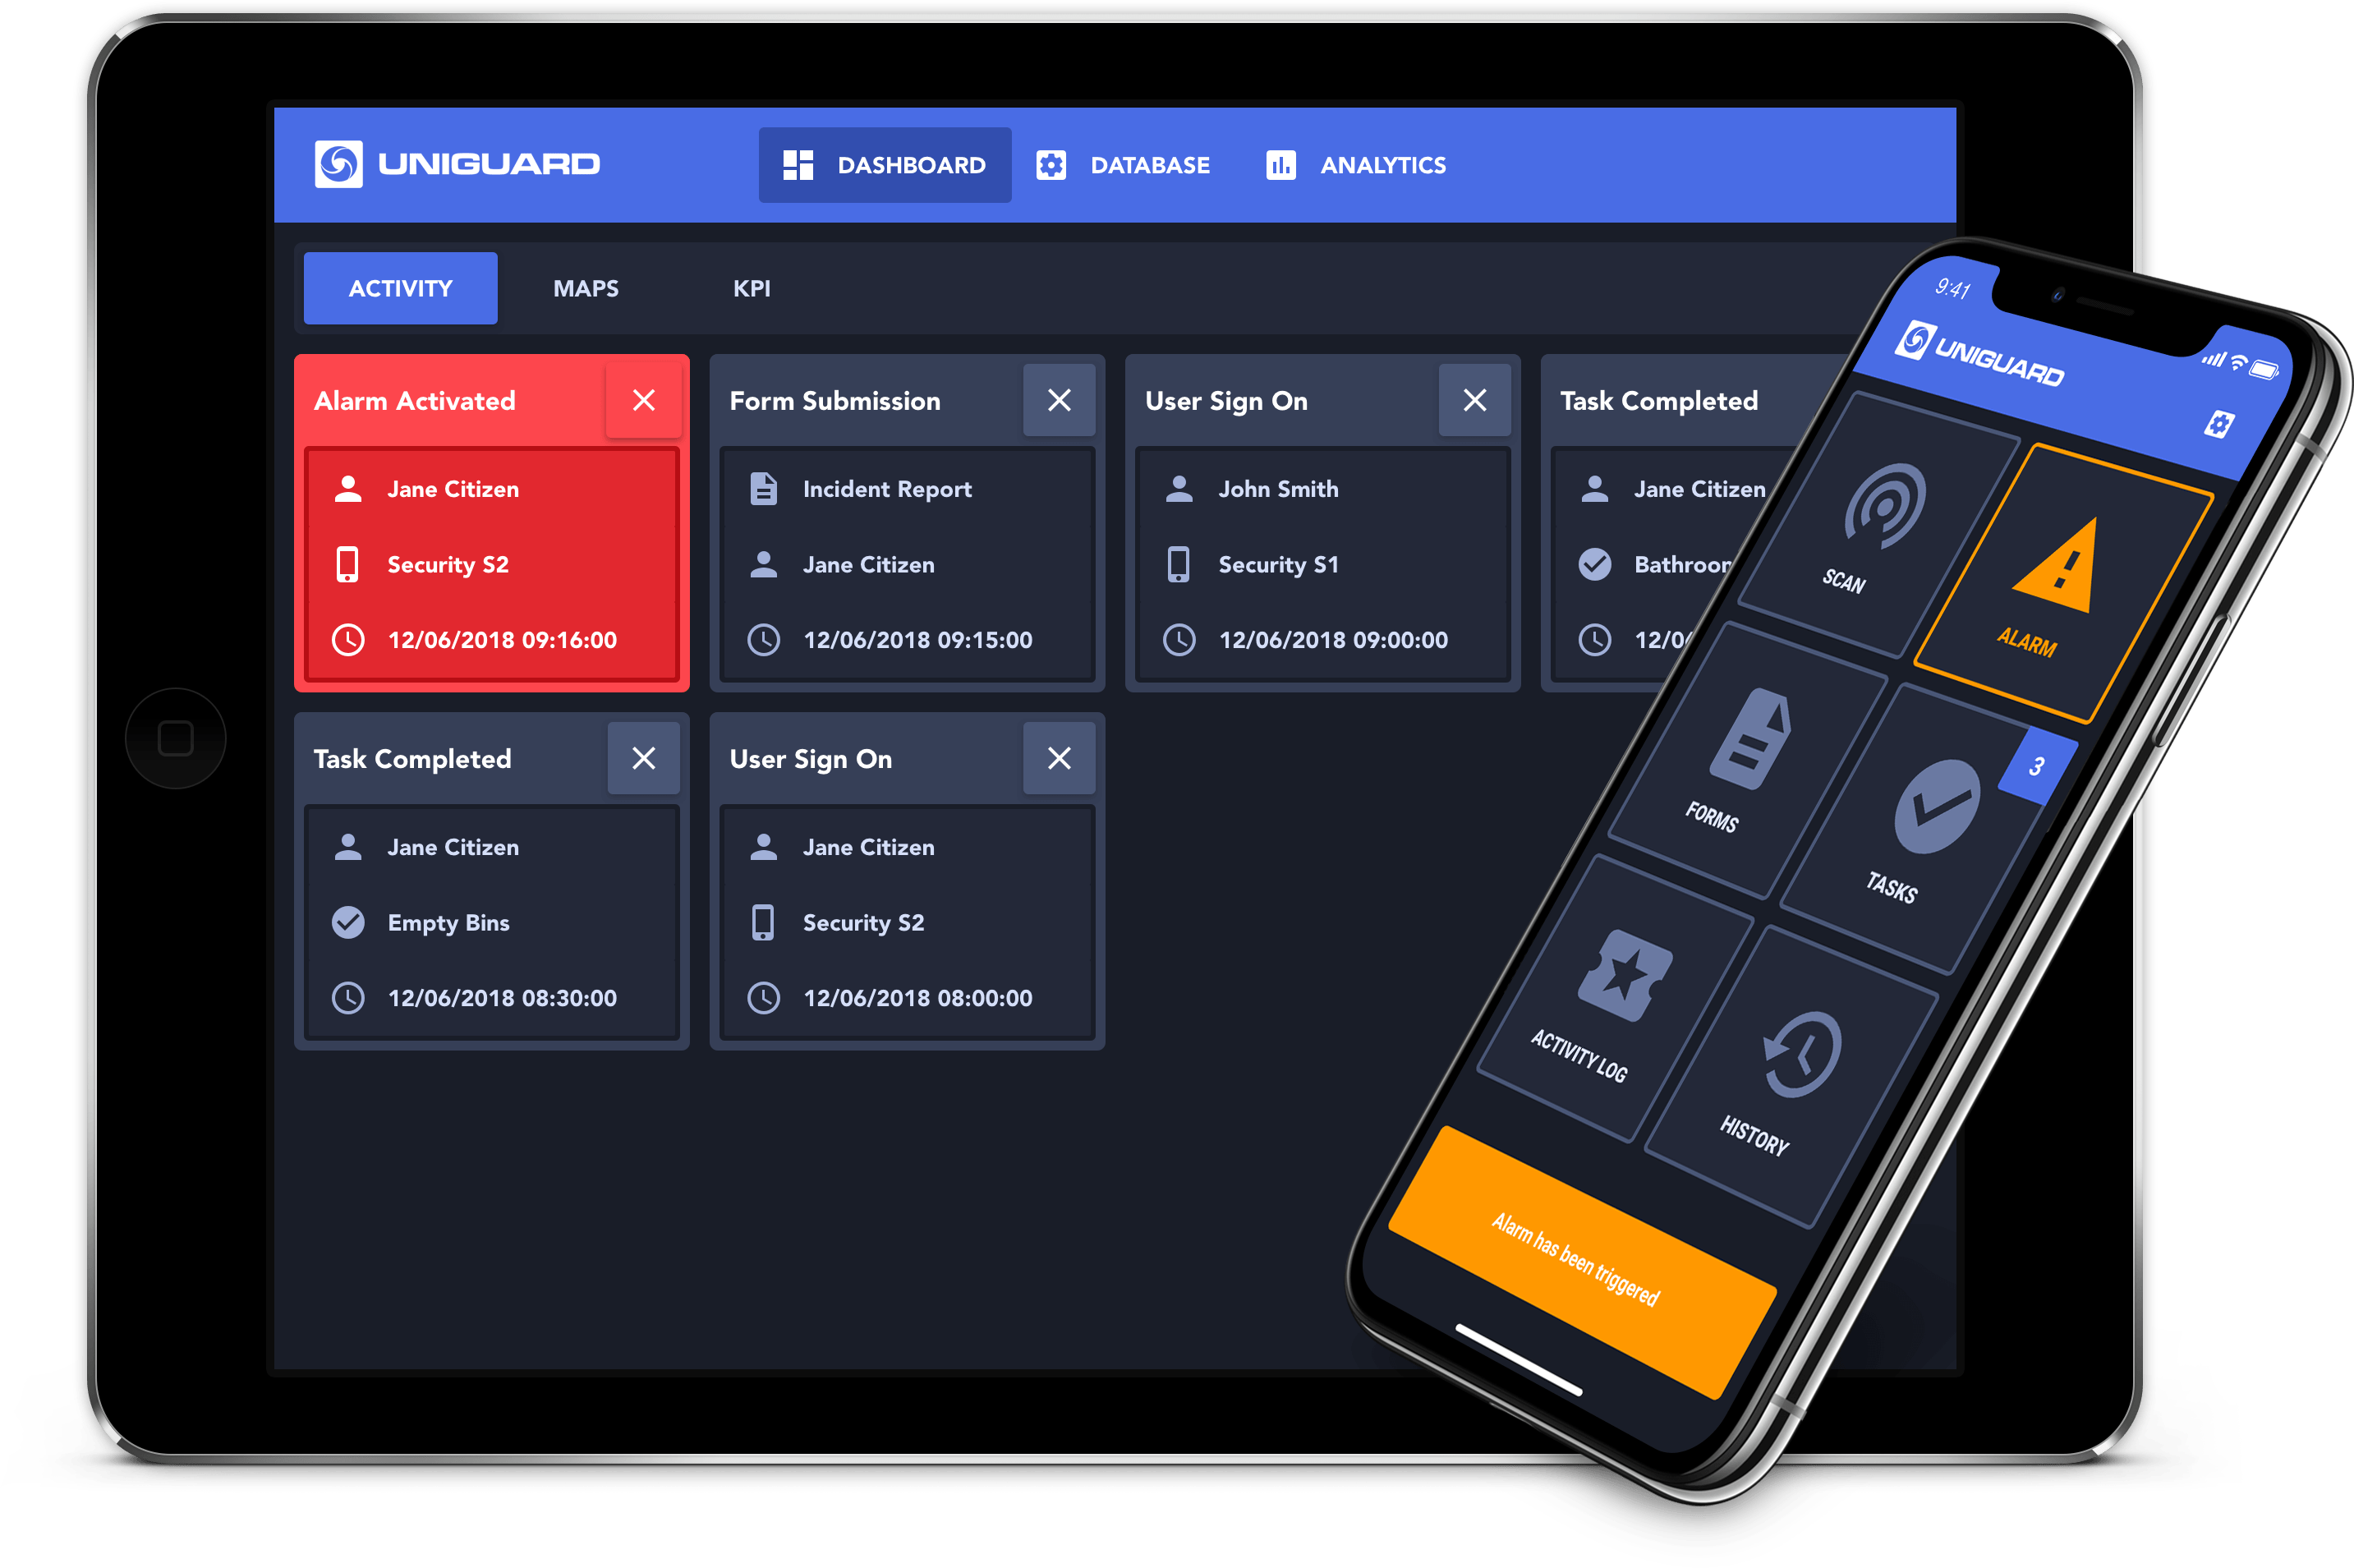 UniGuard Live Dashboard Web & Mobile